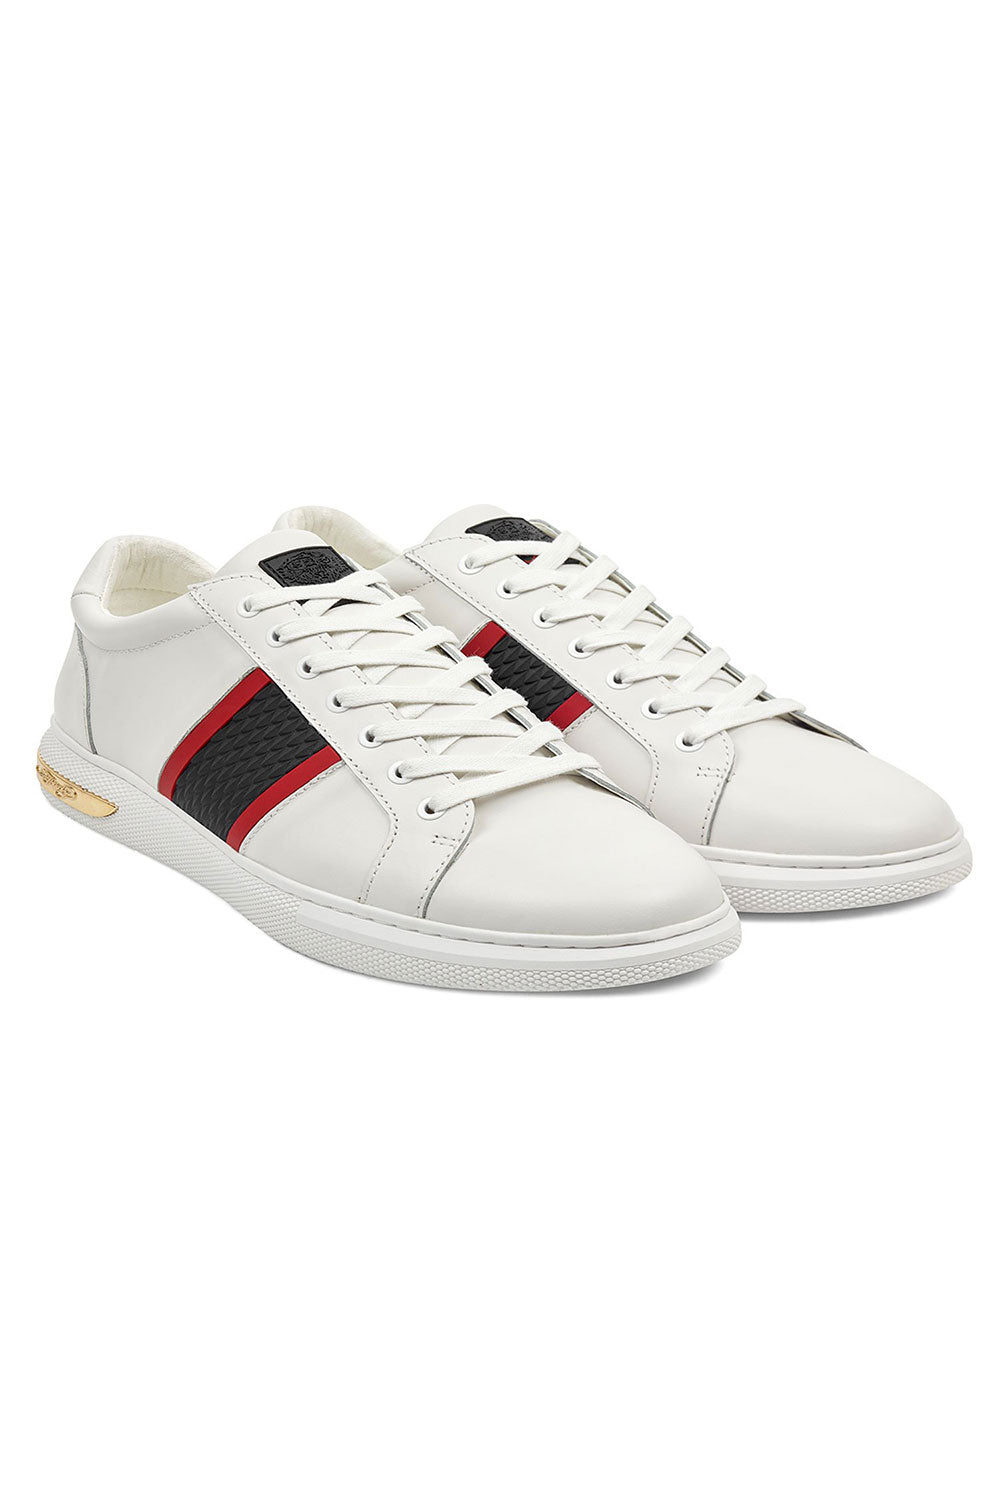 Ed Hardy Blade Low Top - White / Red